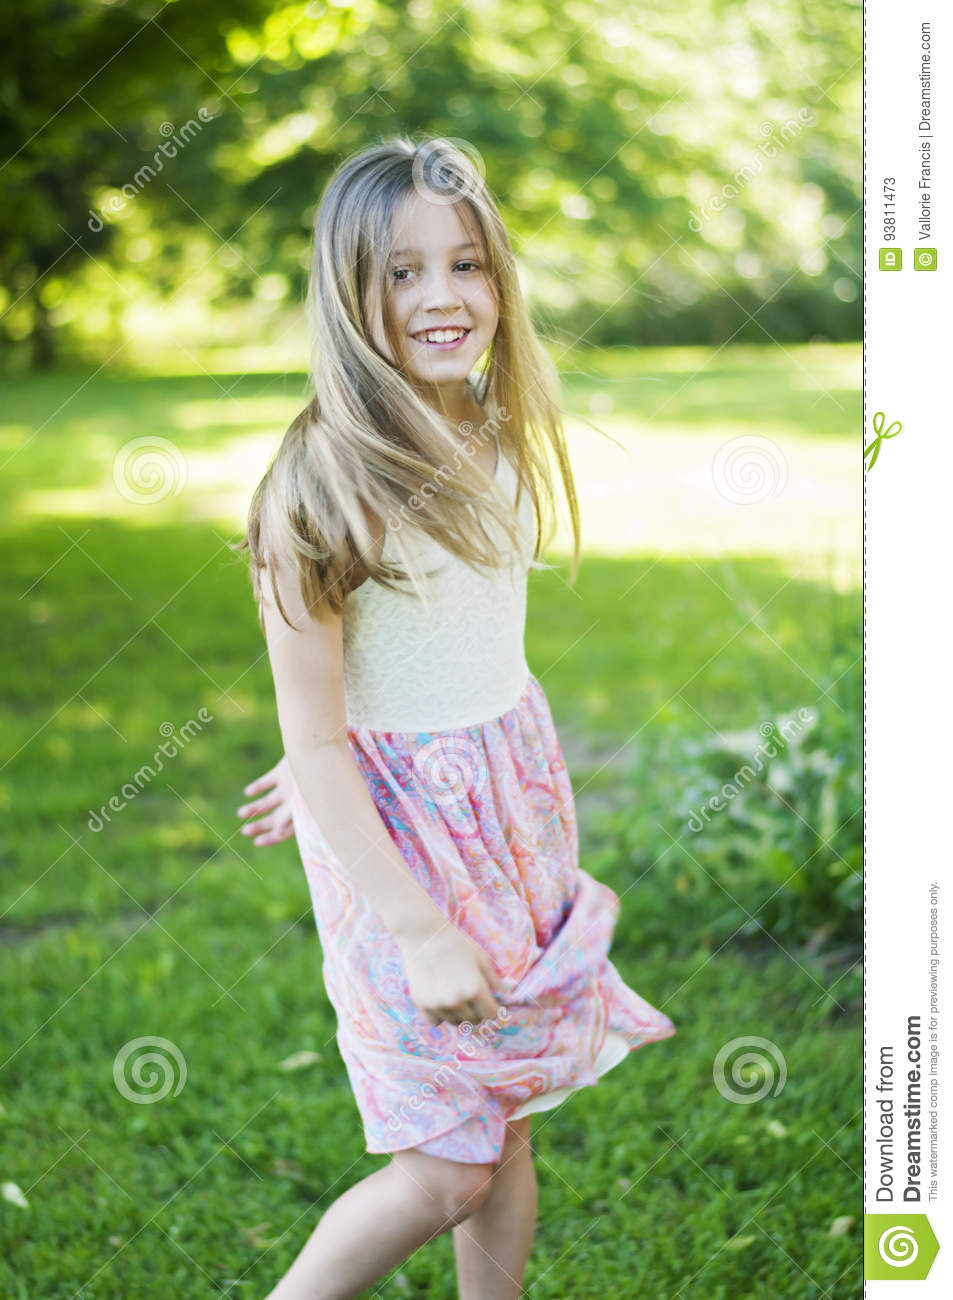 Pre Teen Model Gallery: Girl Wearing Stock Image. Image Of Preteen, Smiling, Gate